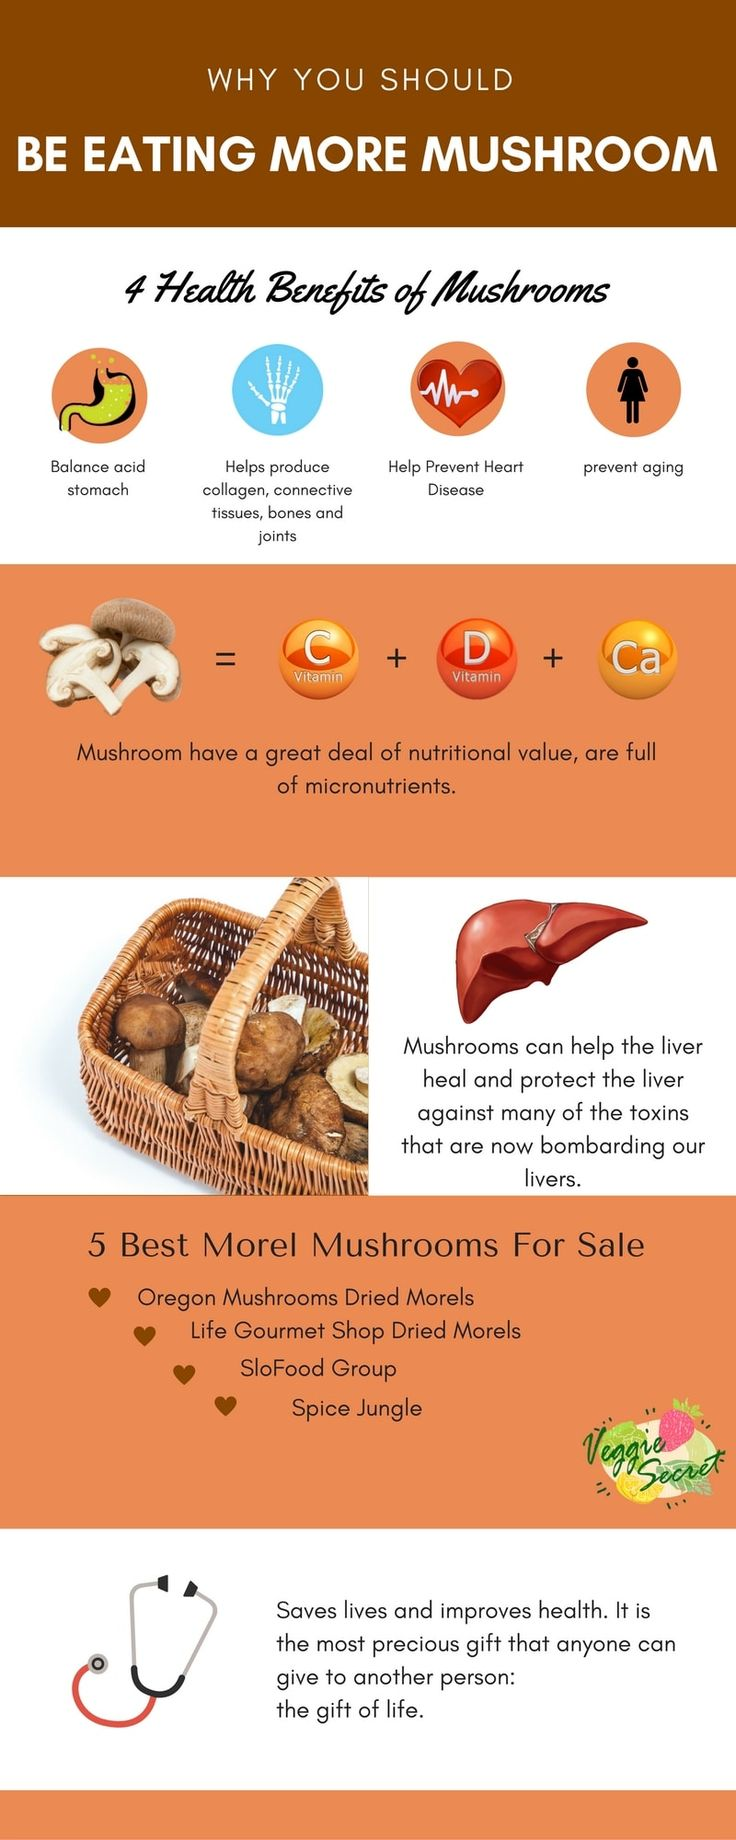 THE BEST 5 MOREL MUSHROOMS FOR SALE IN 2017